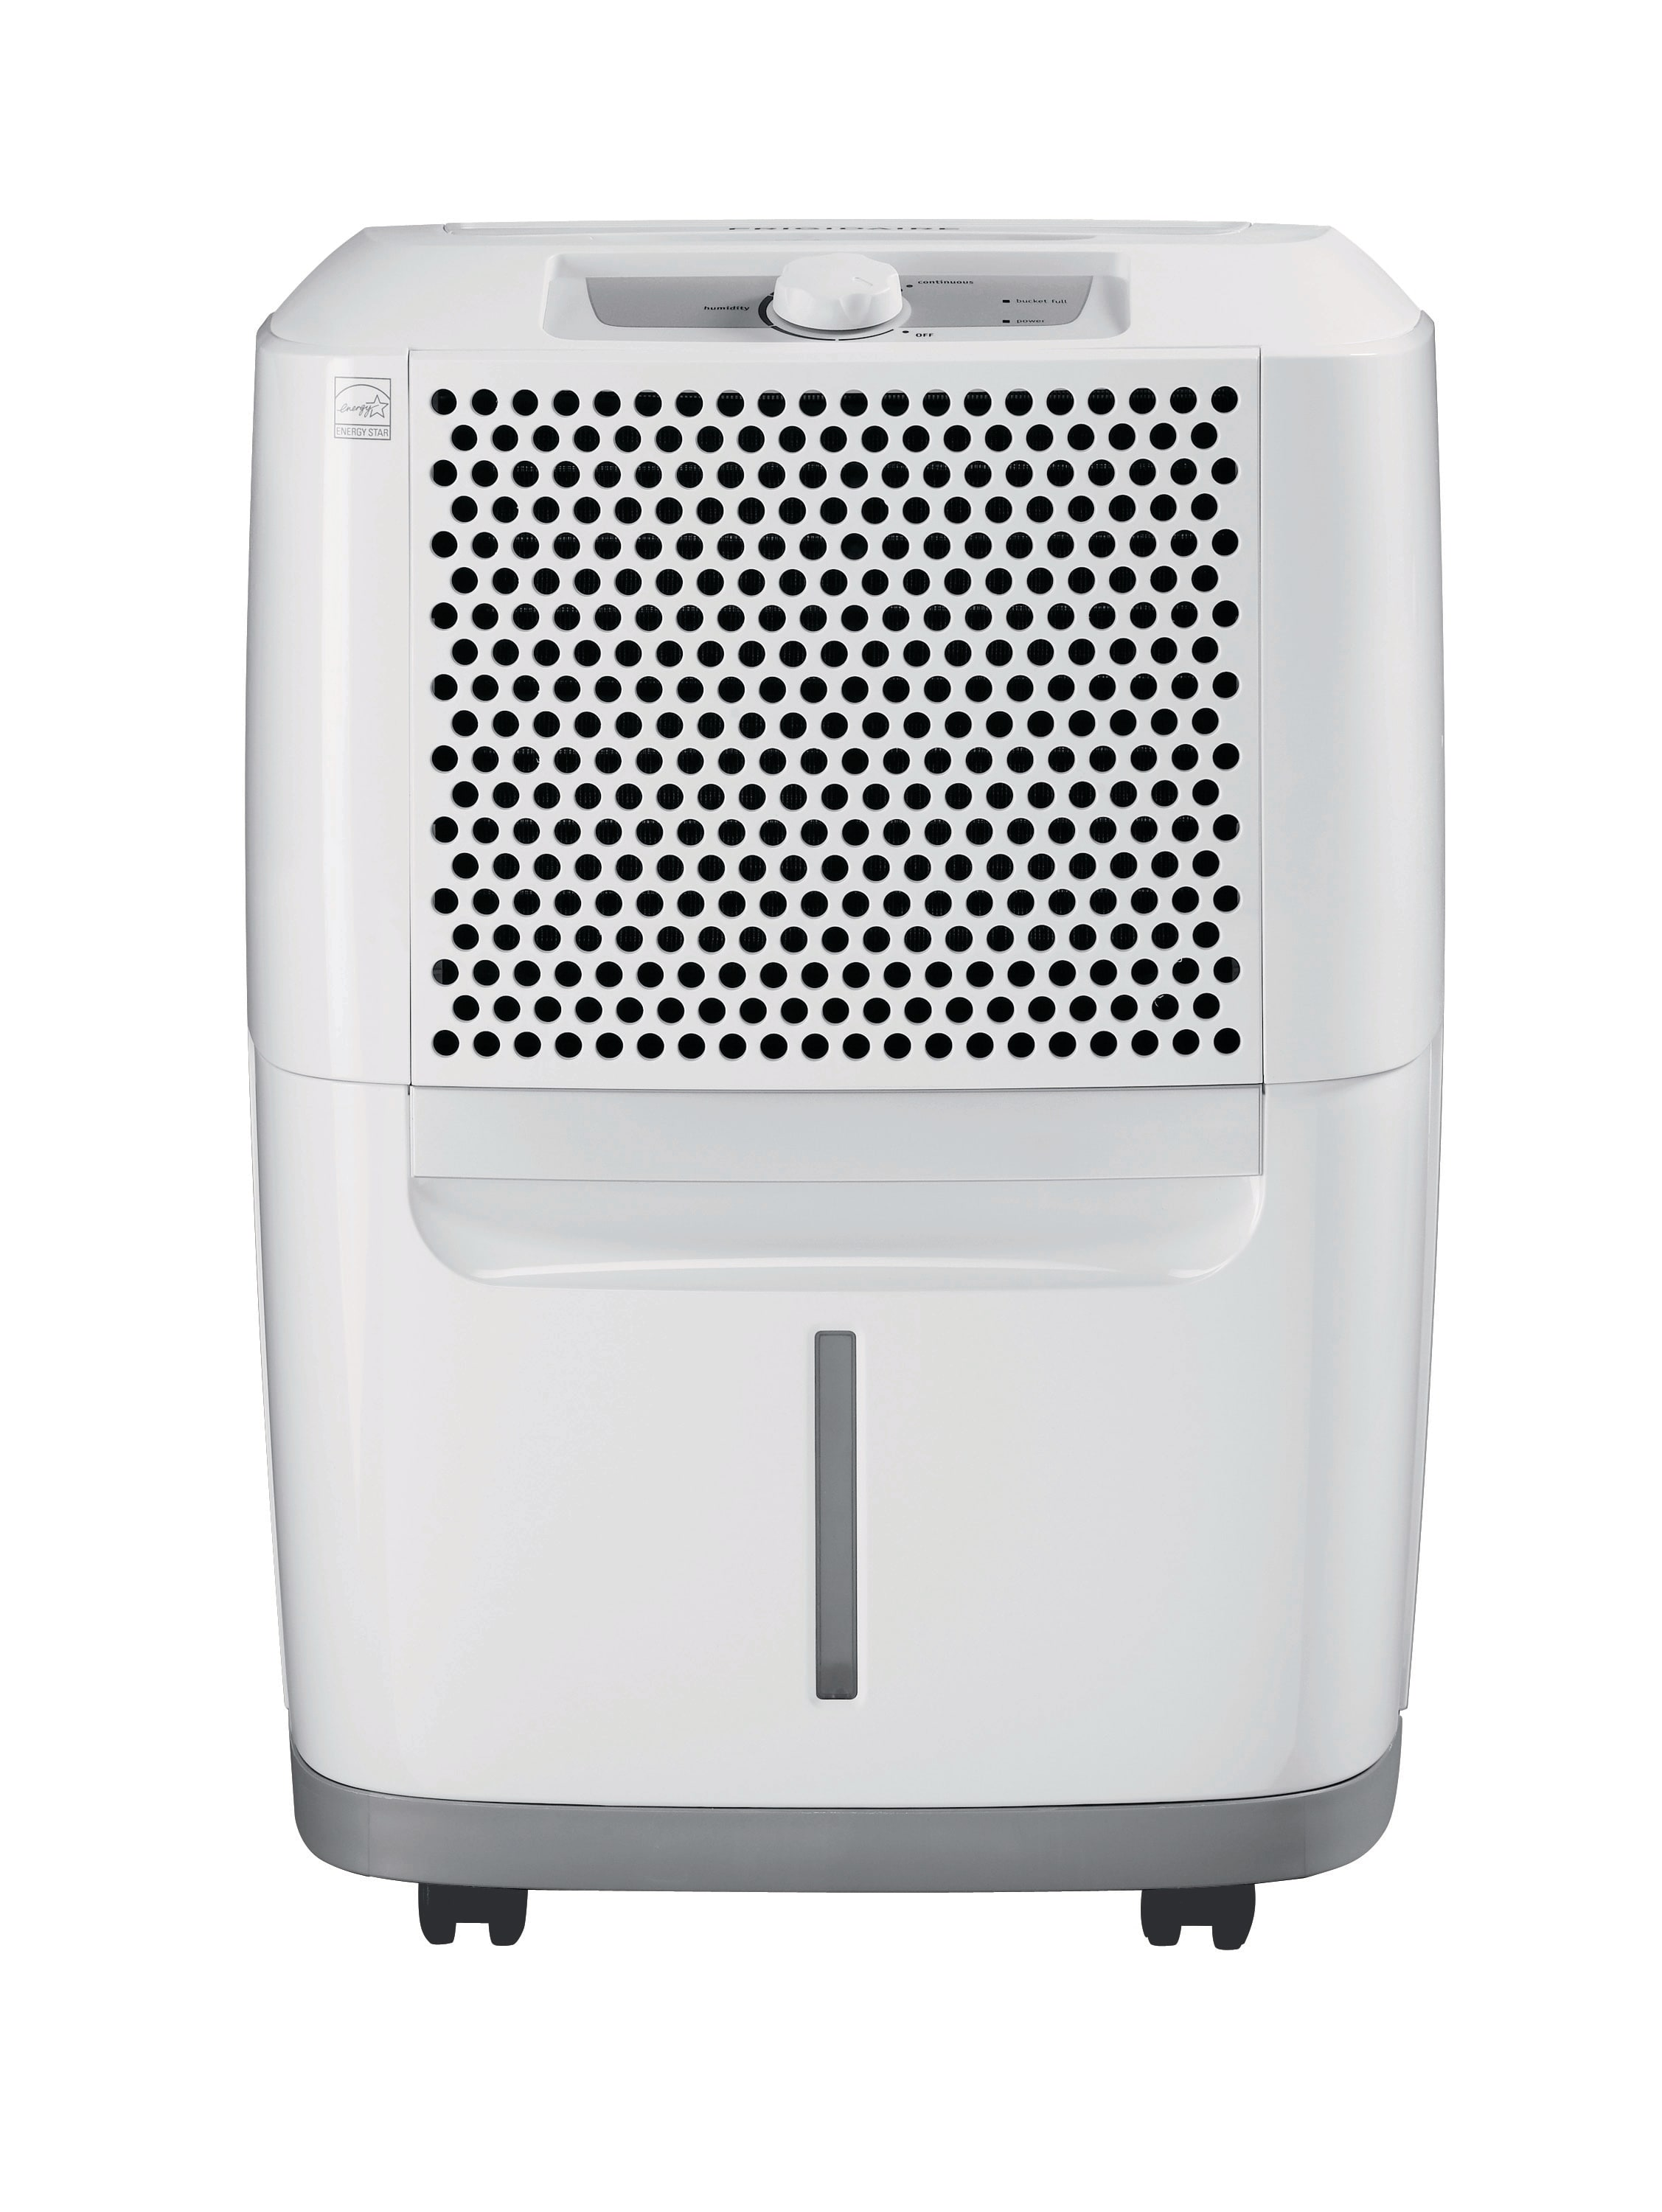 Model: FAD301NWD | Frigidaire Small Room 30 Pint Capacity Dehumidifier